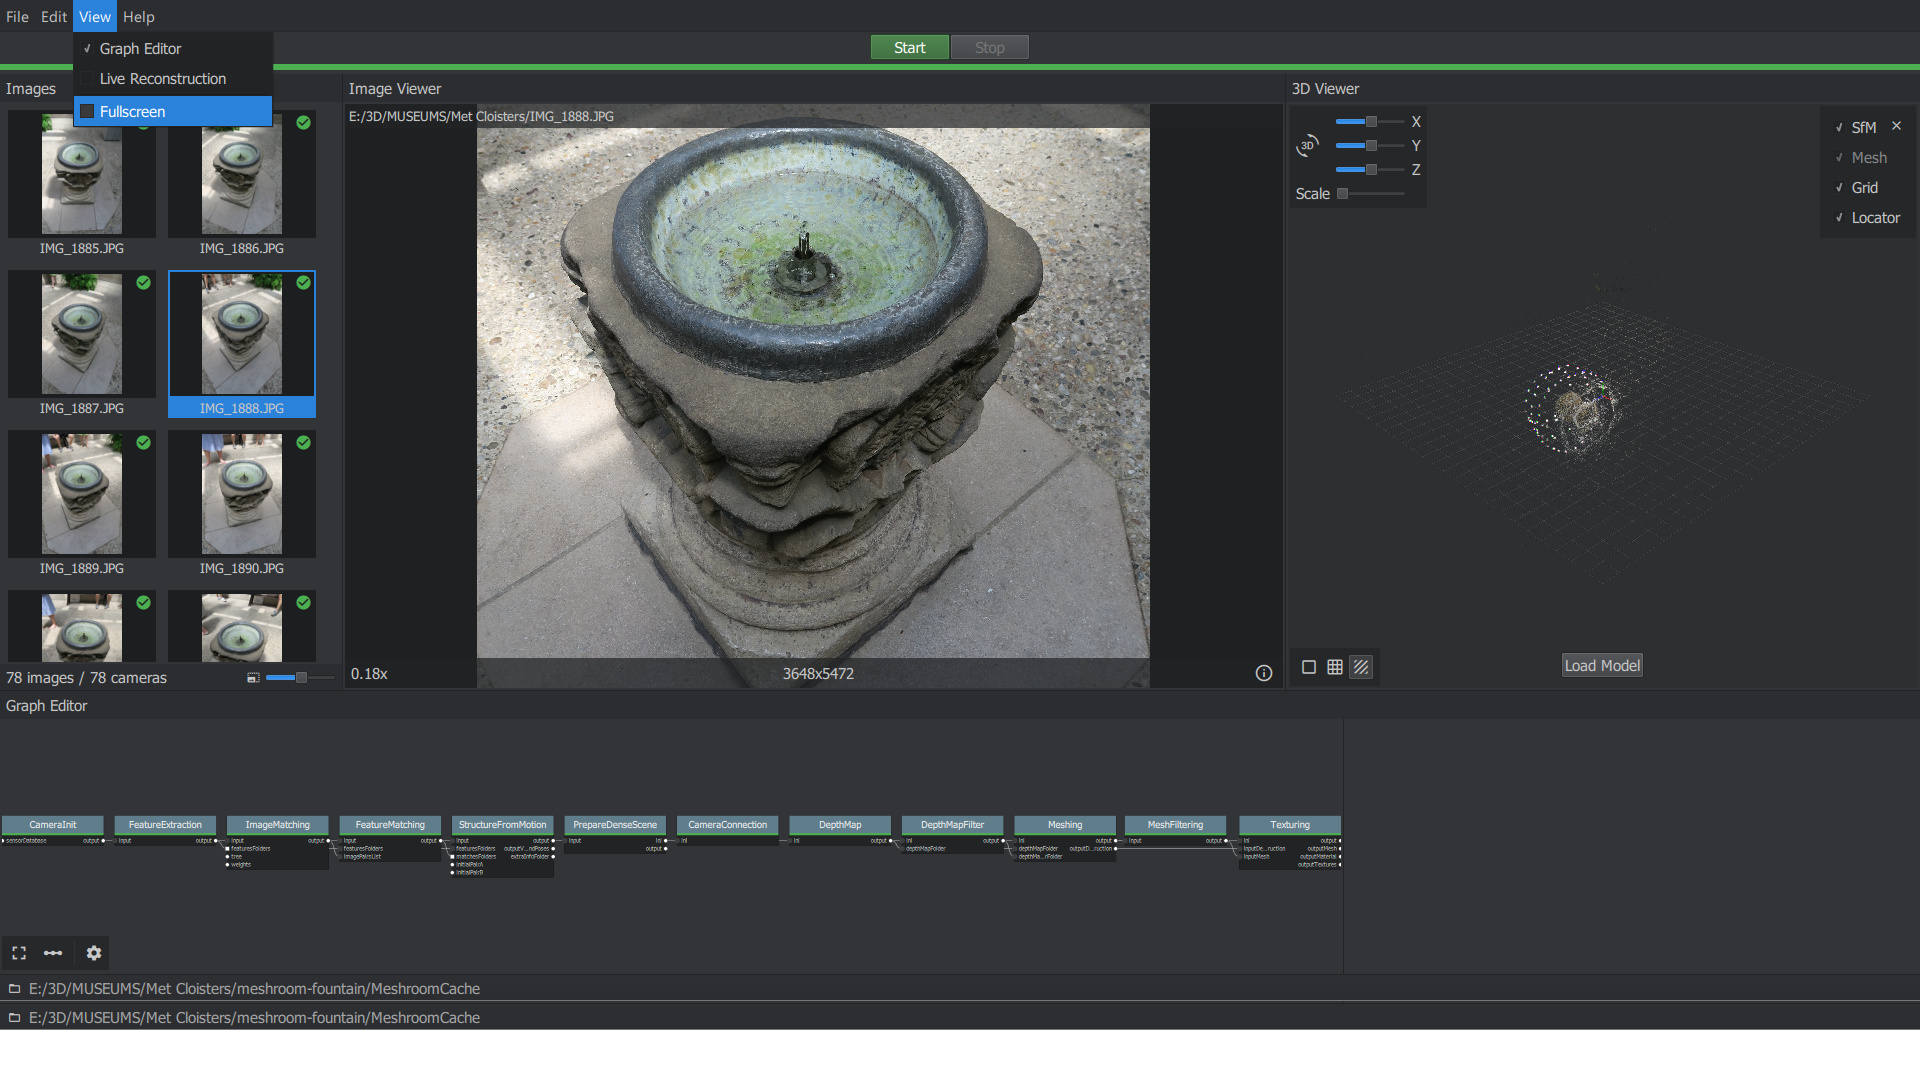 Open Source Photogrammetry with Meshroom - 3D Scanning and